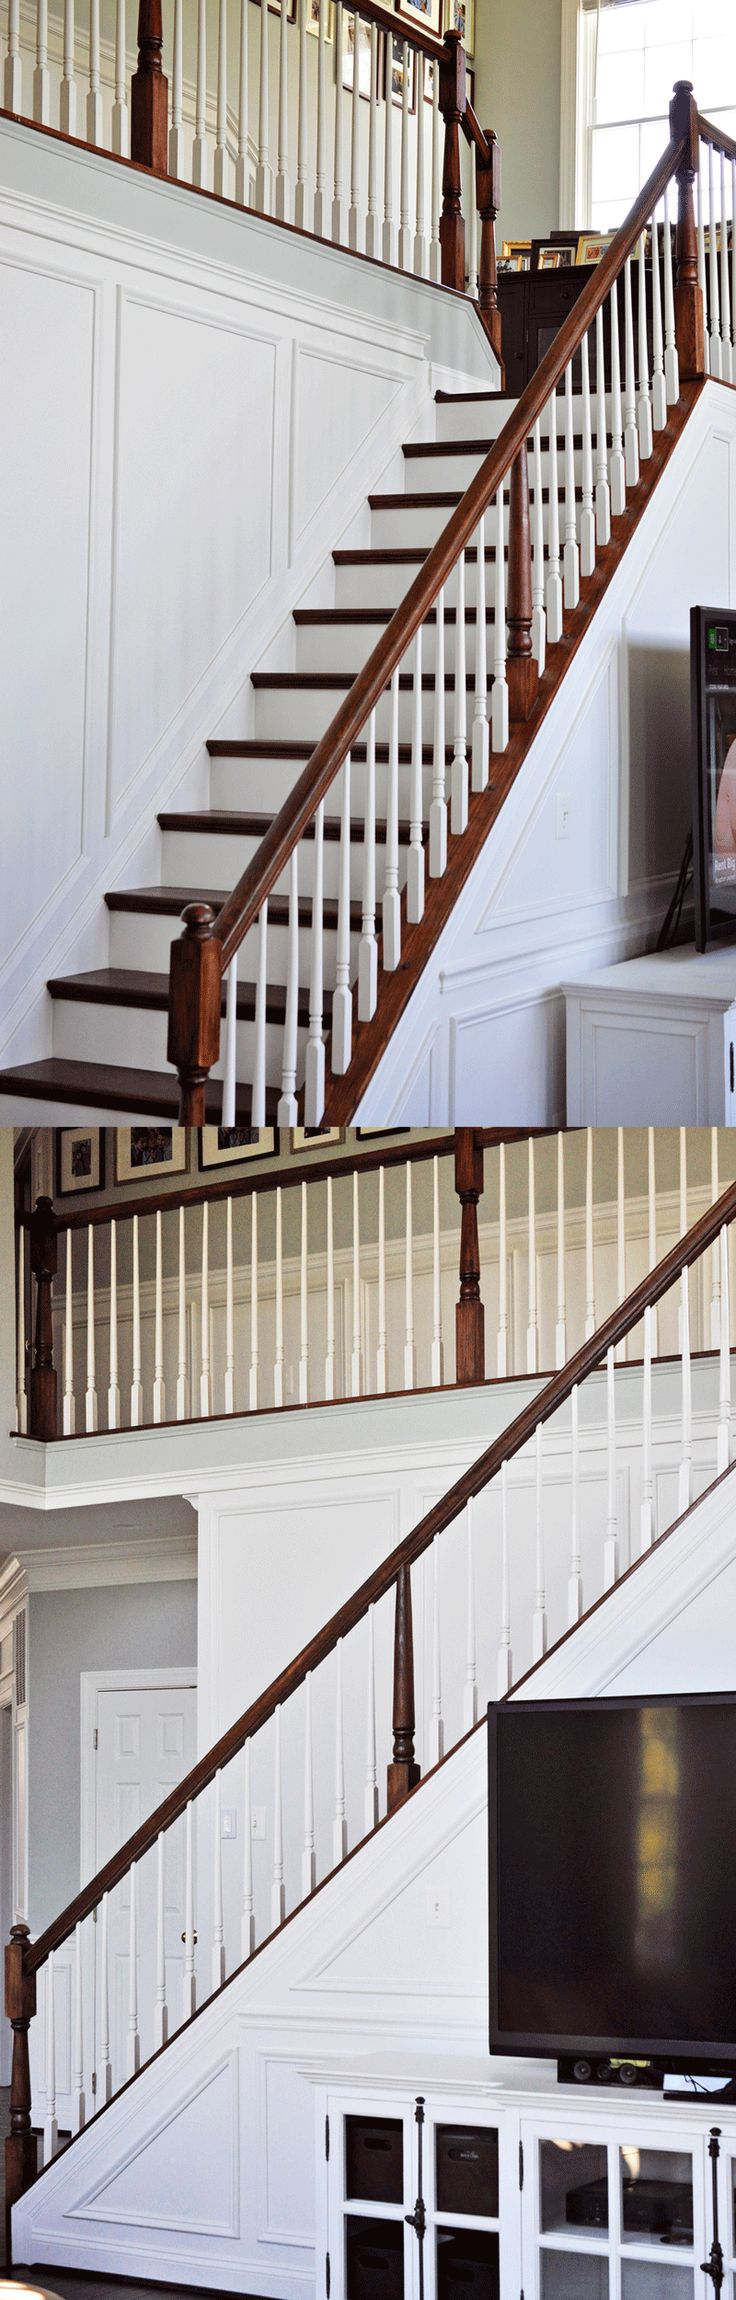 Use shadow box wainscoting to add interest to those tricky angled stair walls. This is a DIY job!